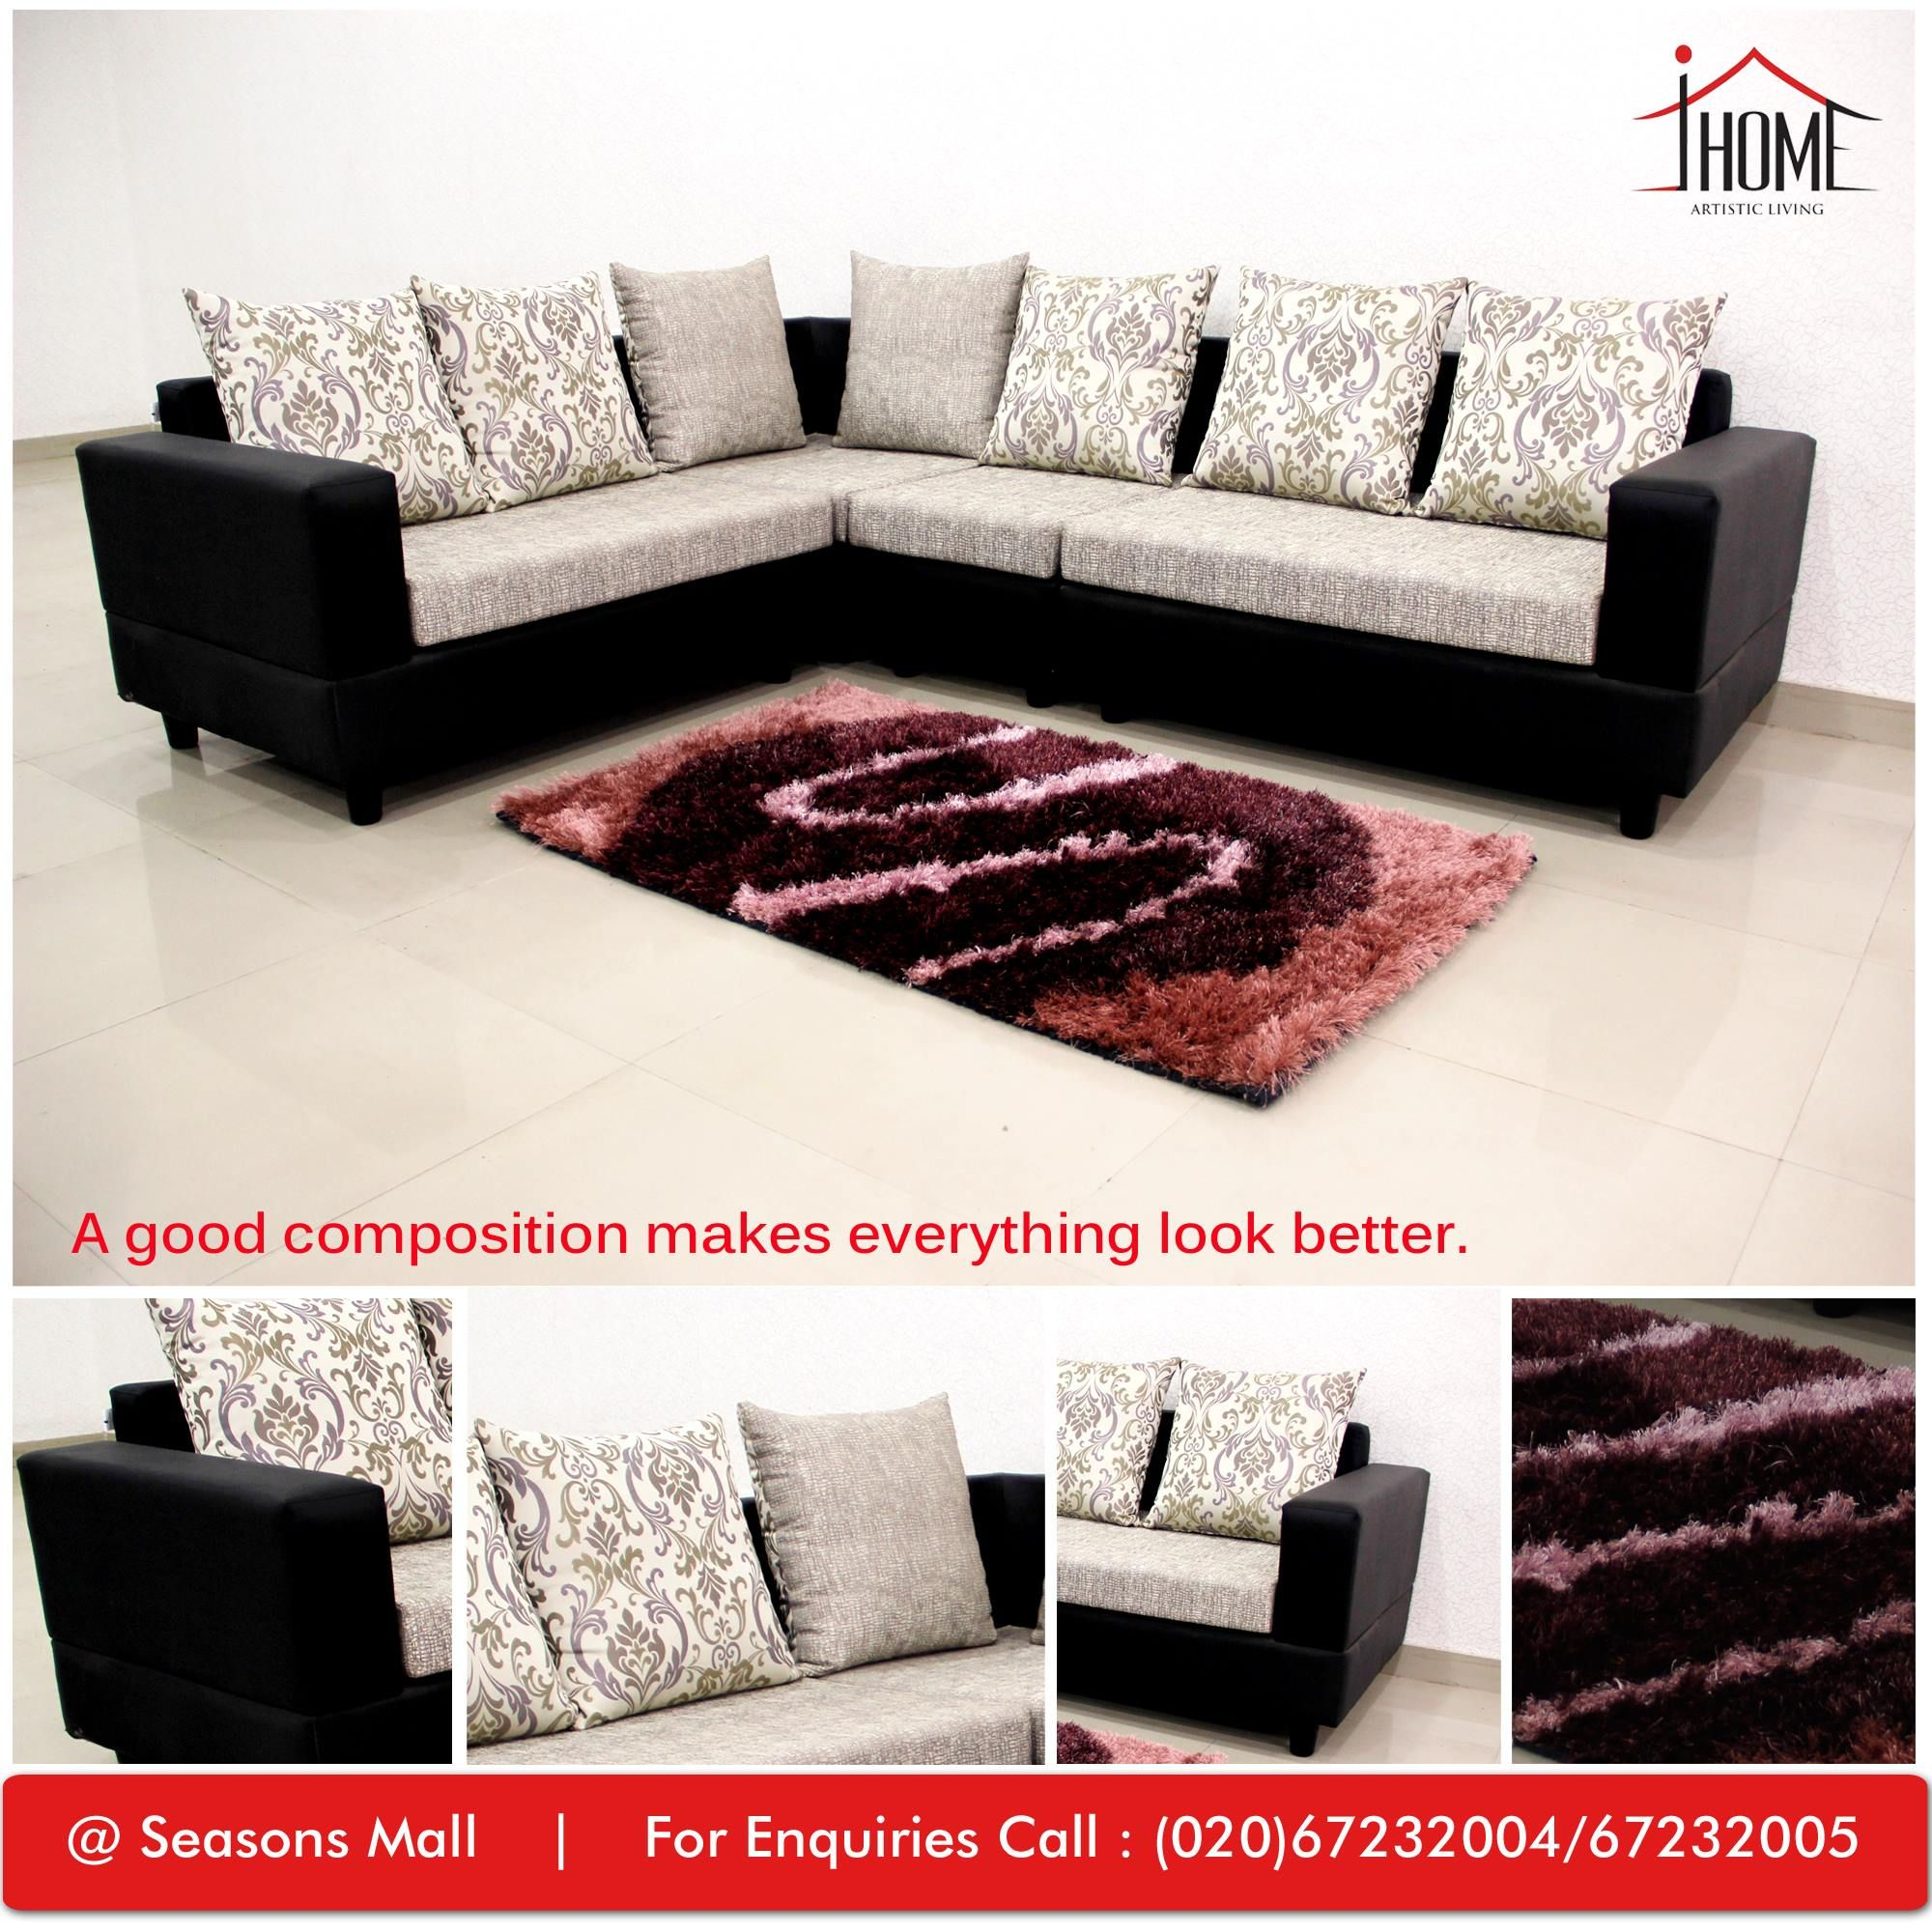 Classic Modular Kitchen Cabinets Rs 18000 Piece: Sectional Black Fabric Sofa Set. Contrasting Colors Are